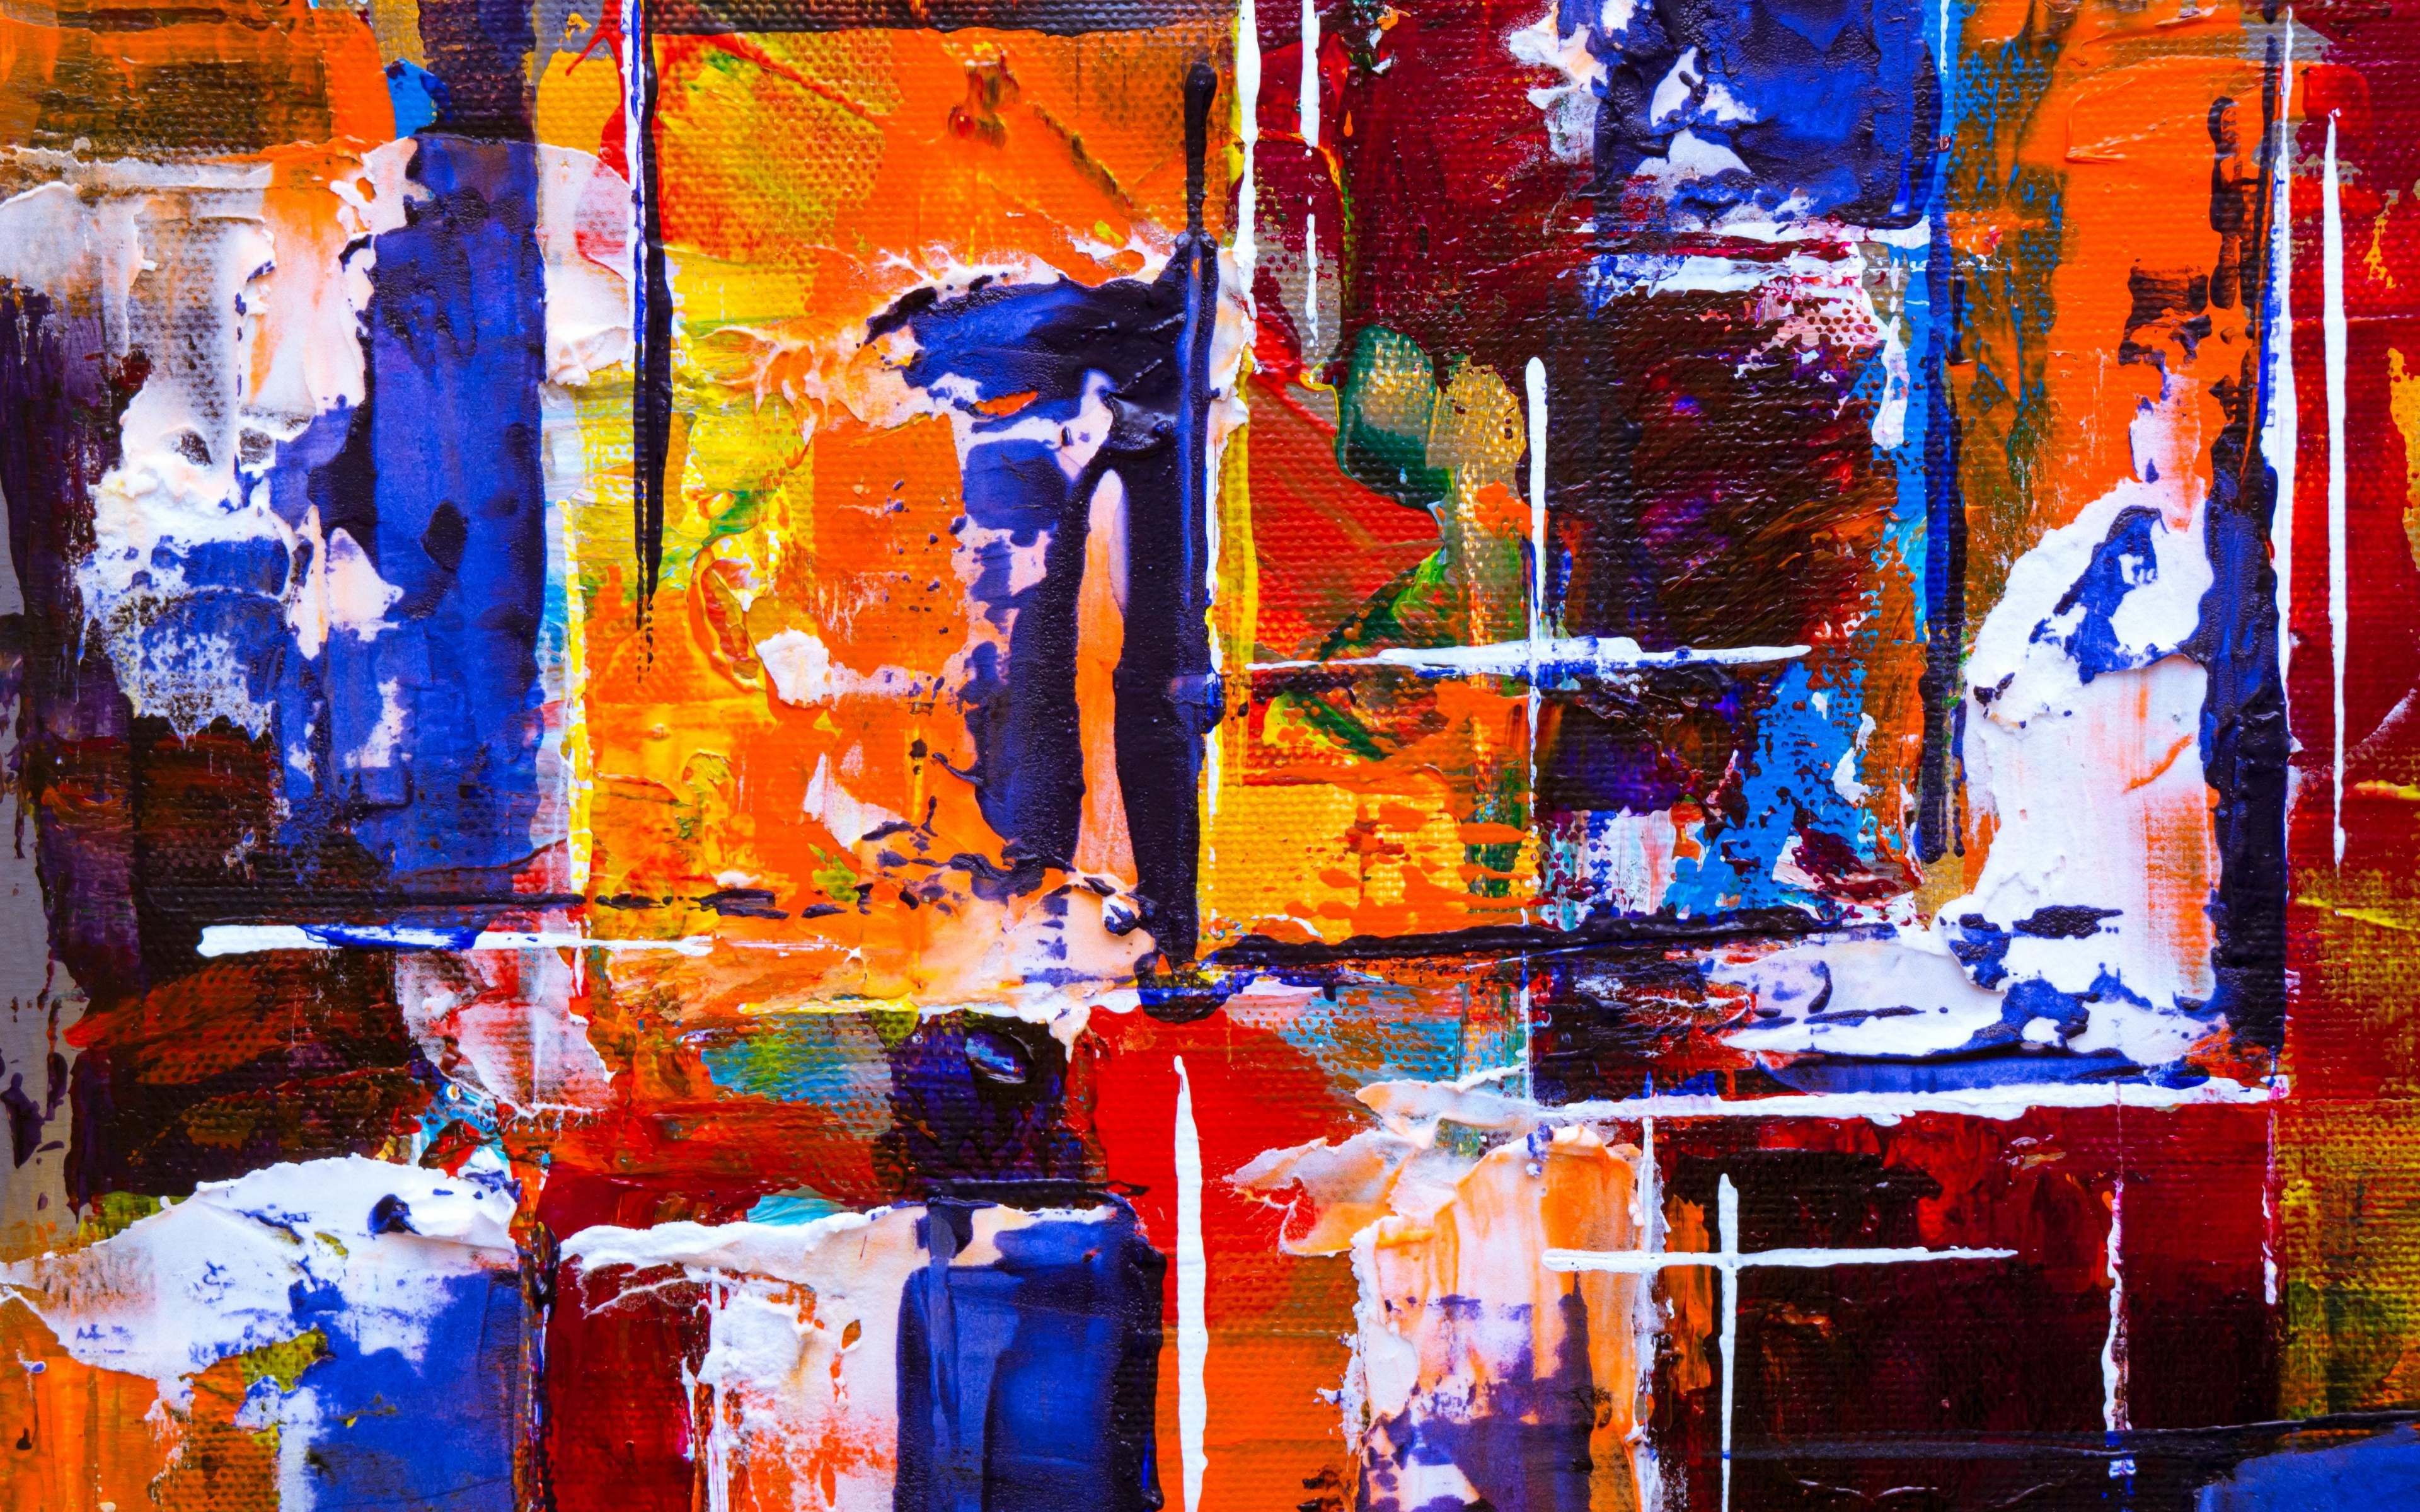 Abstract, Painting, Texture, Colorful, Wallpaper - Painting Texture Background Hd - HD Wallpaper